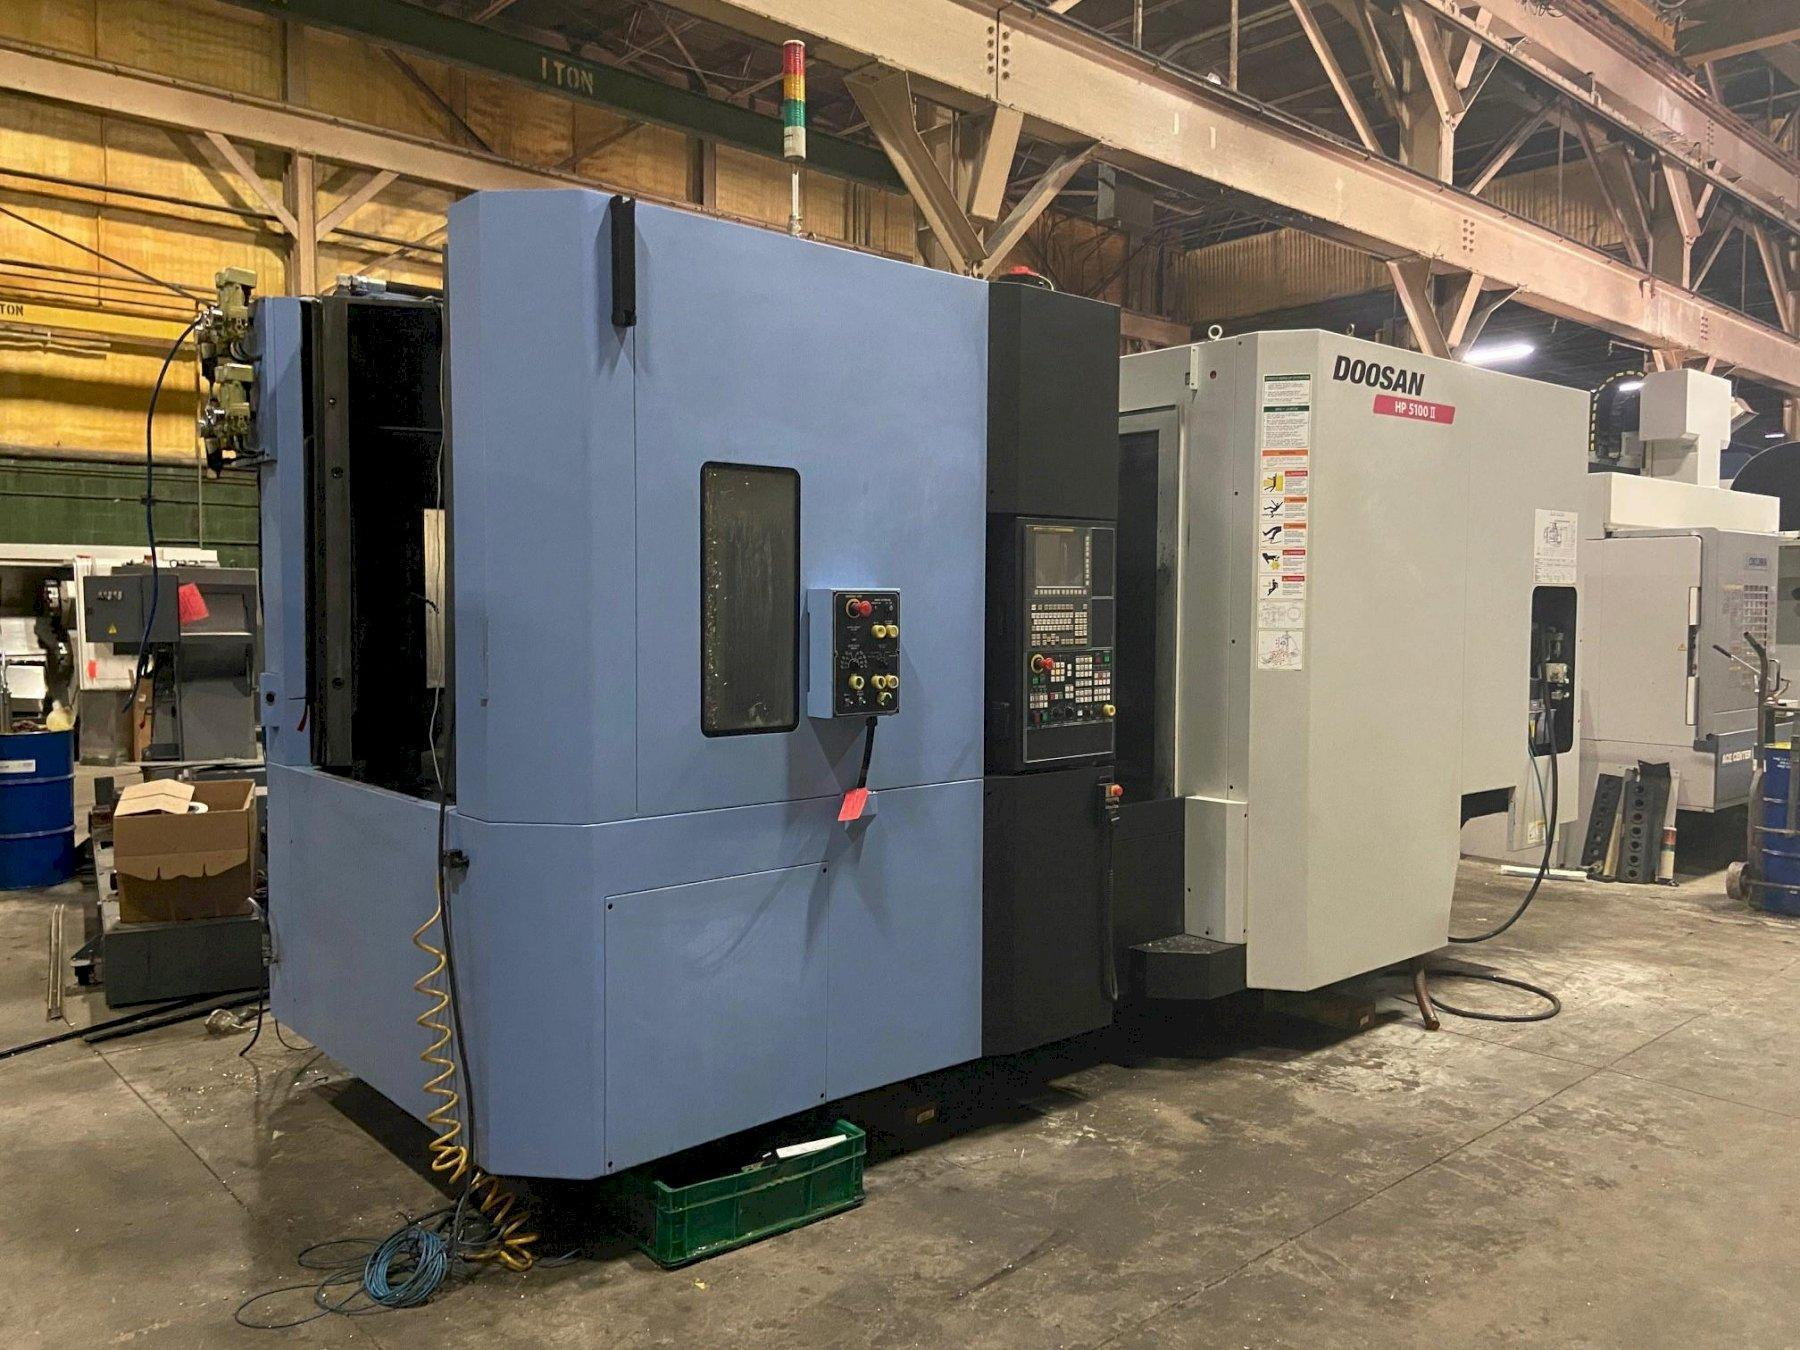 "Doosan HP5100II CNC Horizontal Machining Center, Fanuc 31iA, 19.7"" Pallets, 14K Spindle, CTS, 30 HP, Hyd Clamping, 60 ATC, Chiller, Full 4th, 2014"